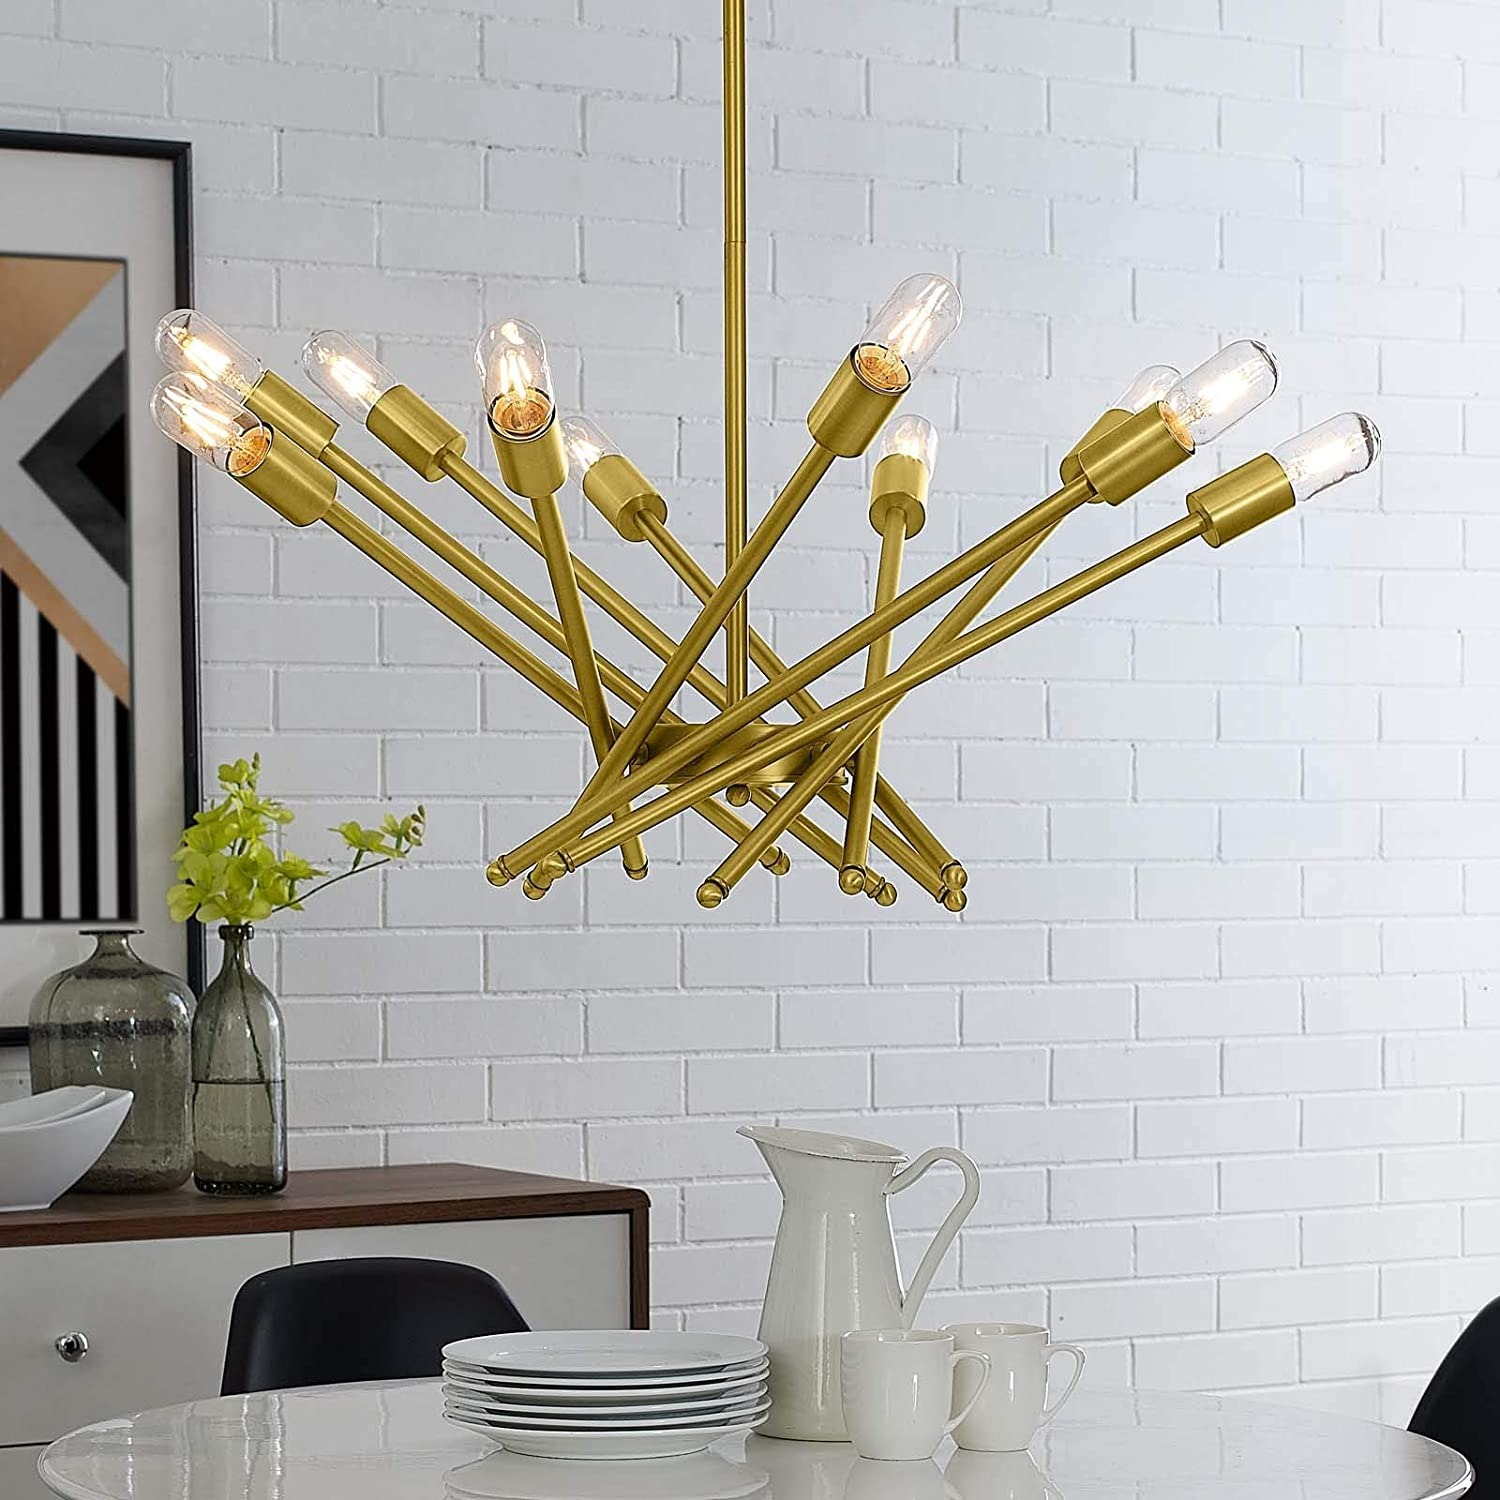 Contemporary Pendant Lamp In Brass Metal Rods - image-4